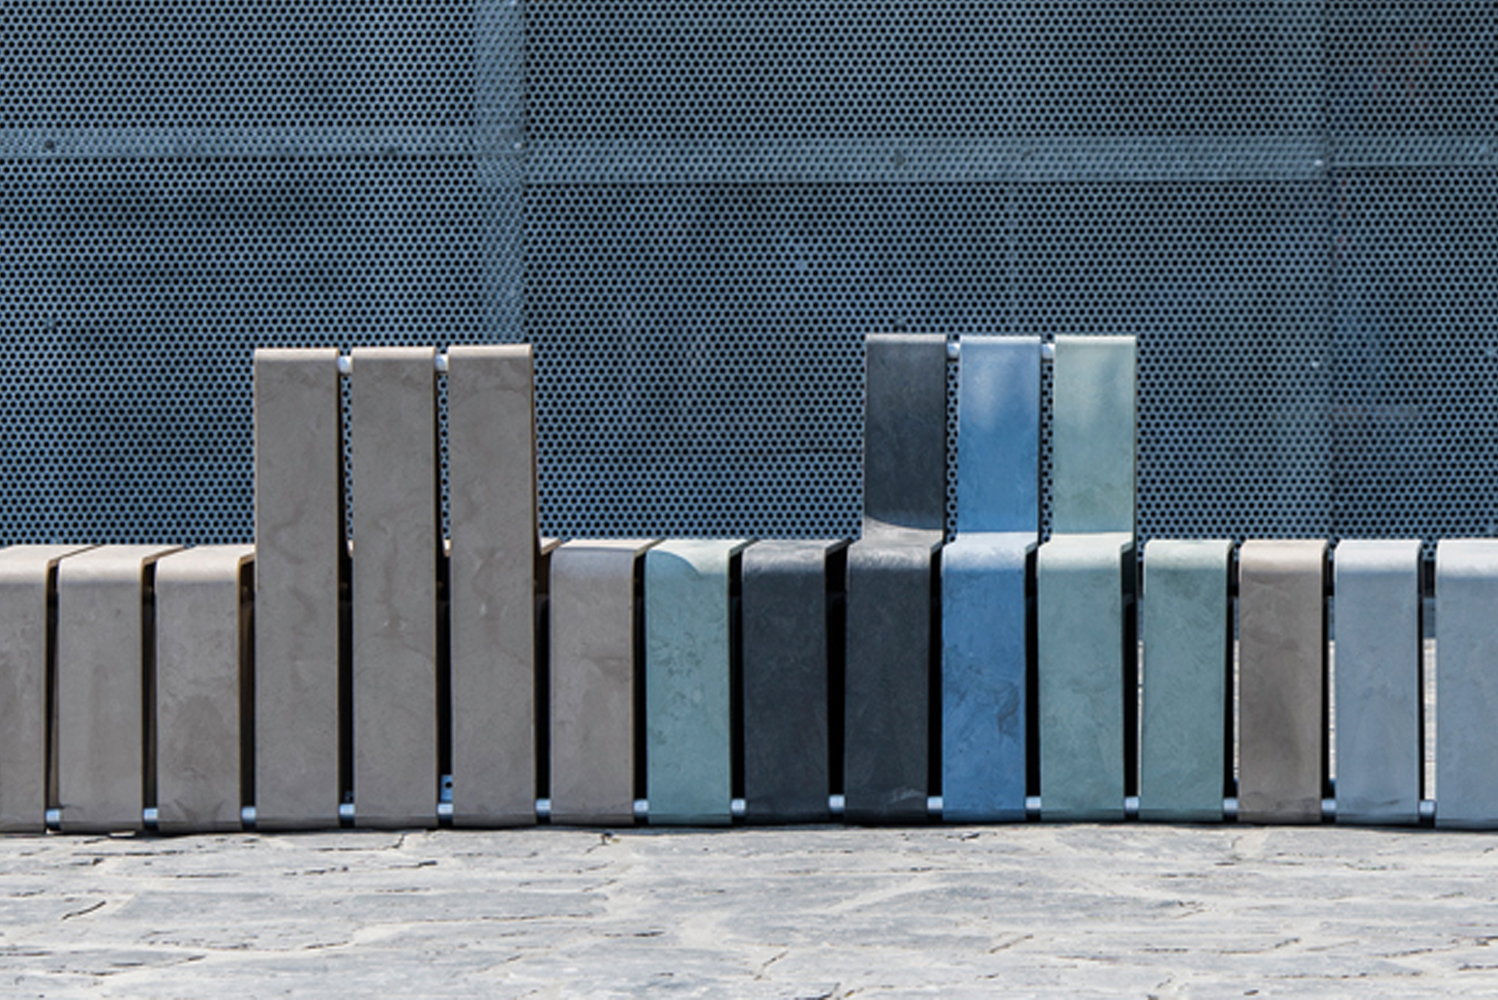 Introducing the H-Bench by Studio Segers.